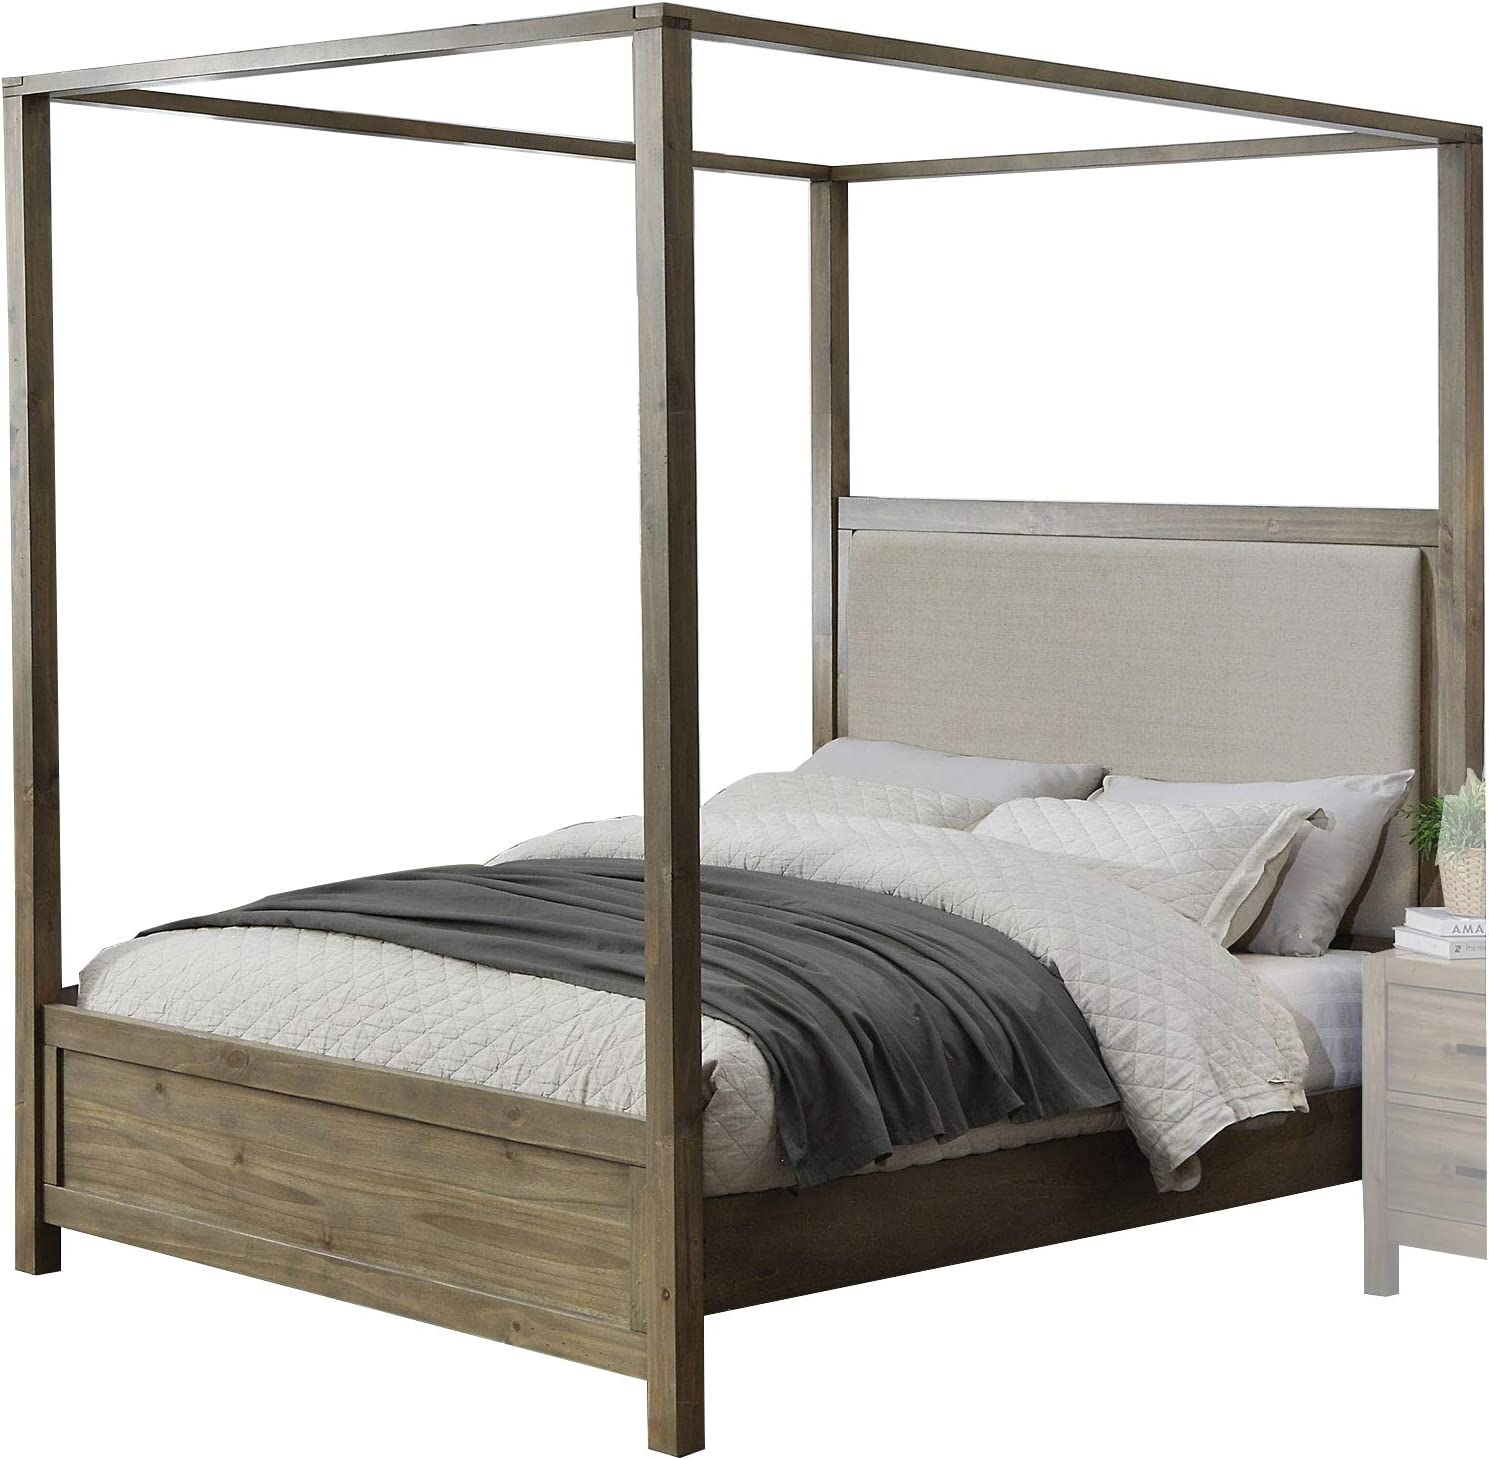 - Amazon.com - Benjara Contemporary Canopy Queen Bed With Padded